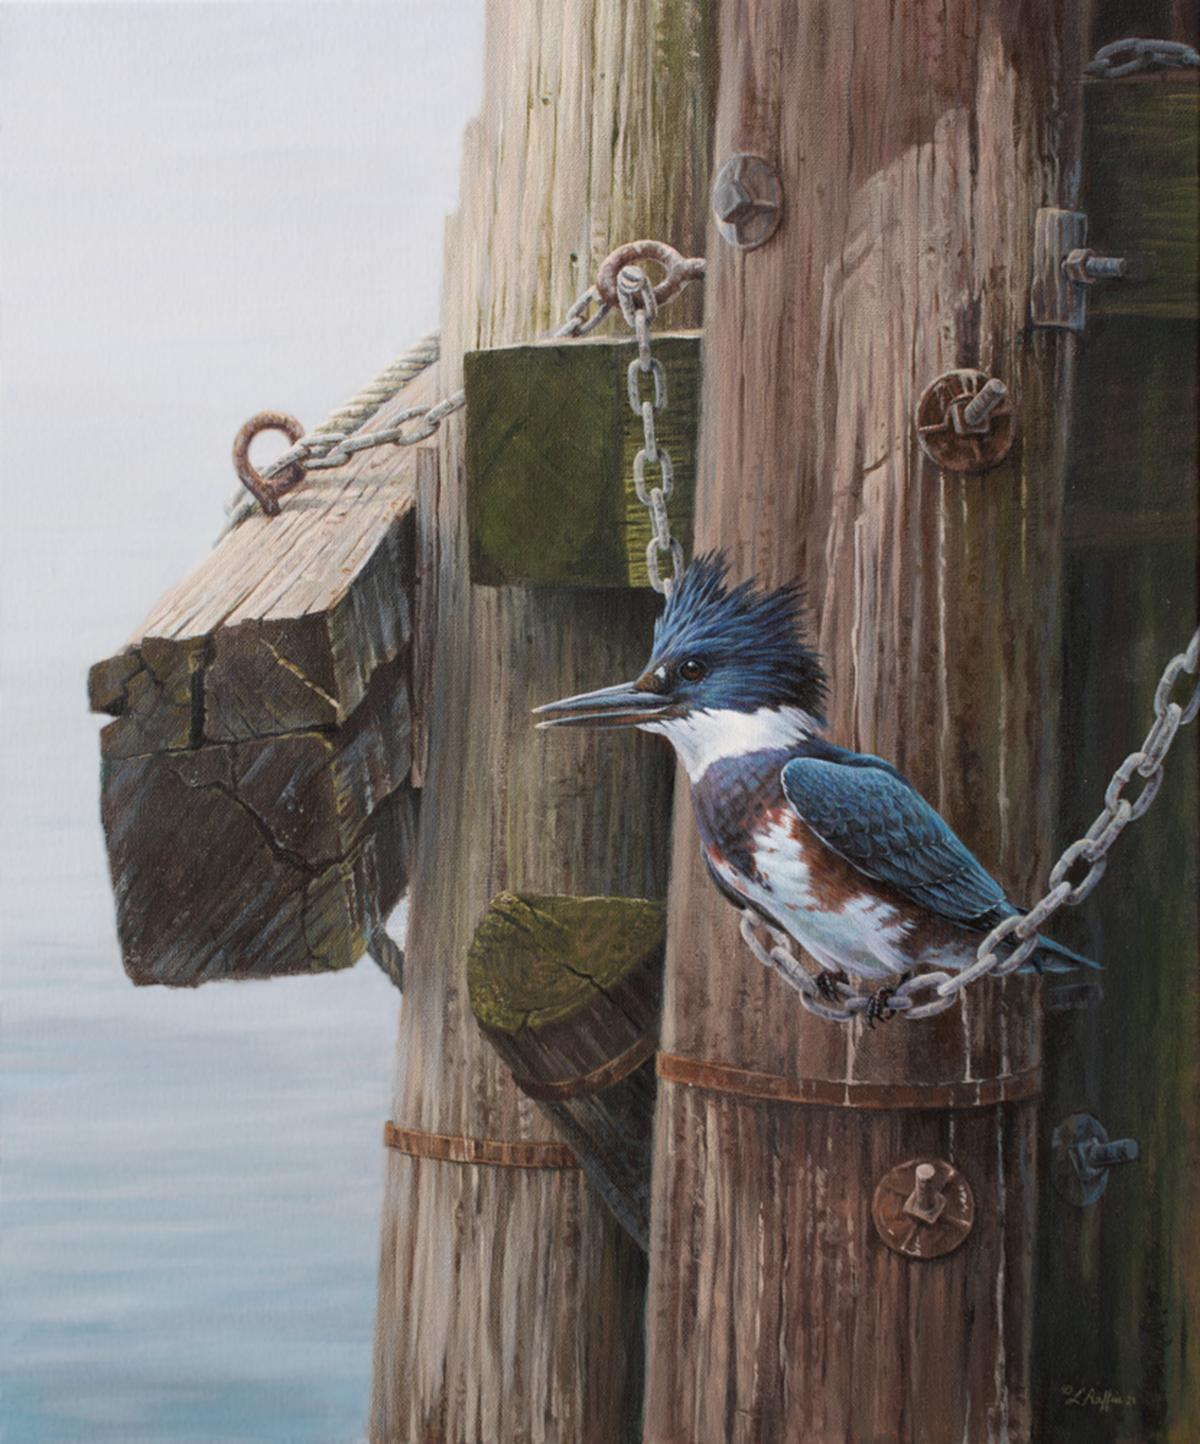 """Hanging Out """"Belted Kingfisher""""   Wallhanging by Luke Raffin   Artists for Conservation 2021"""